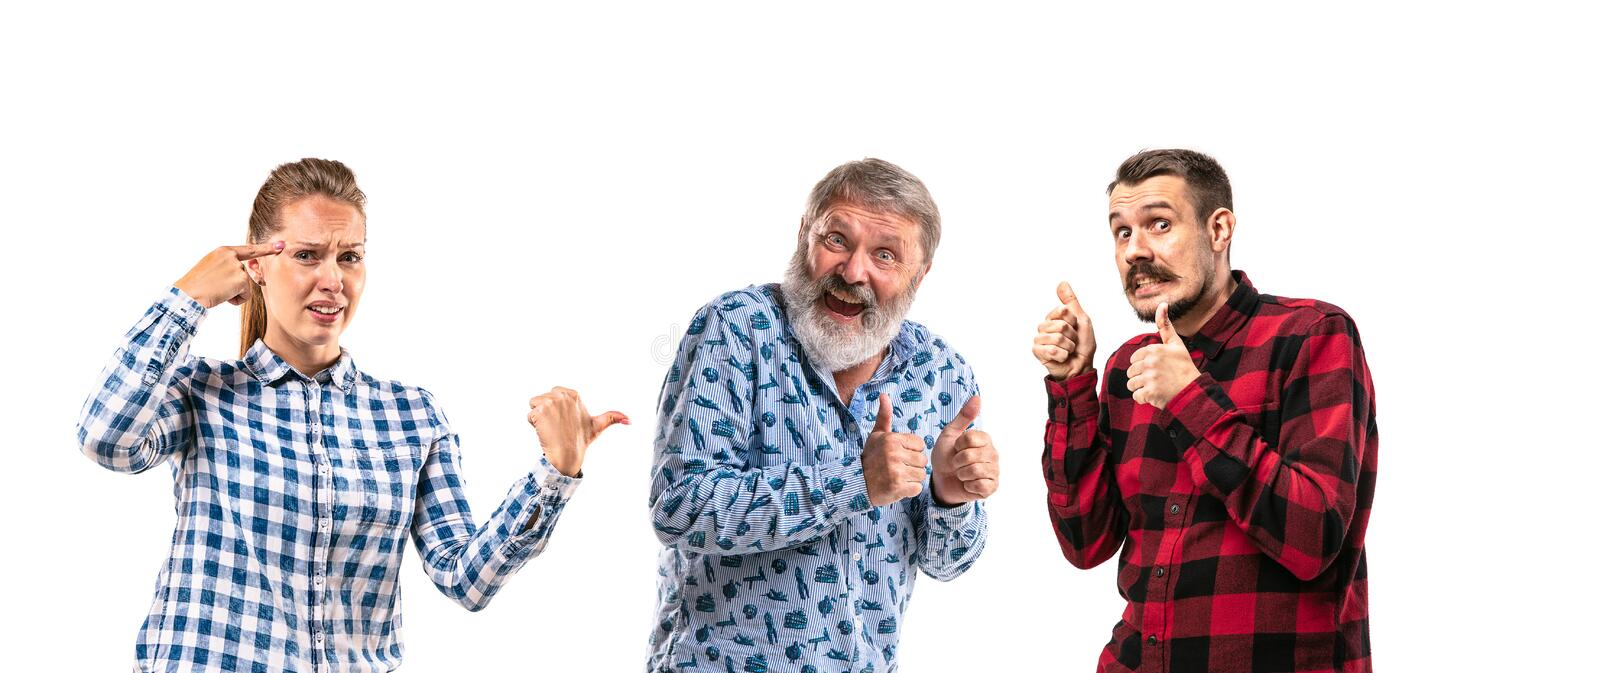 Family members arguing with one another on white studio background. royalty free stock photo